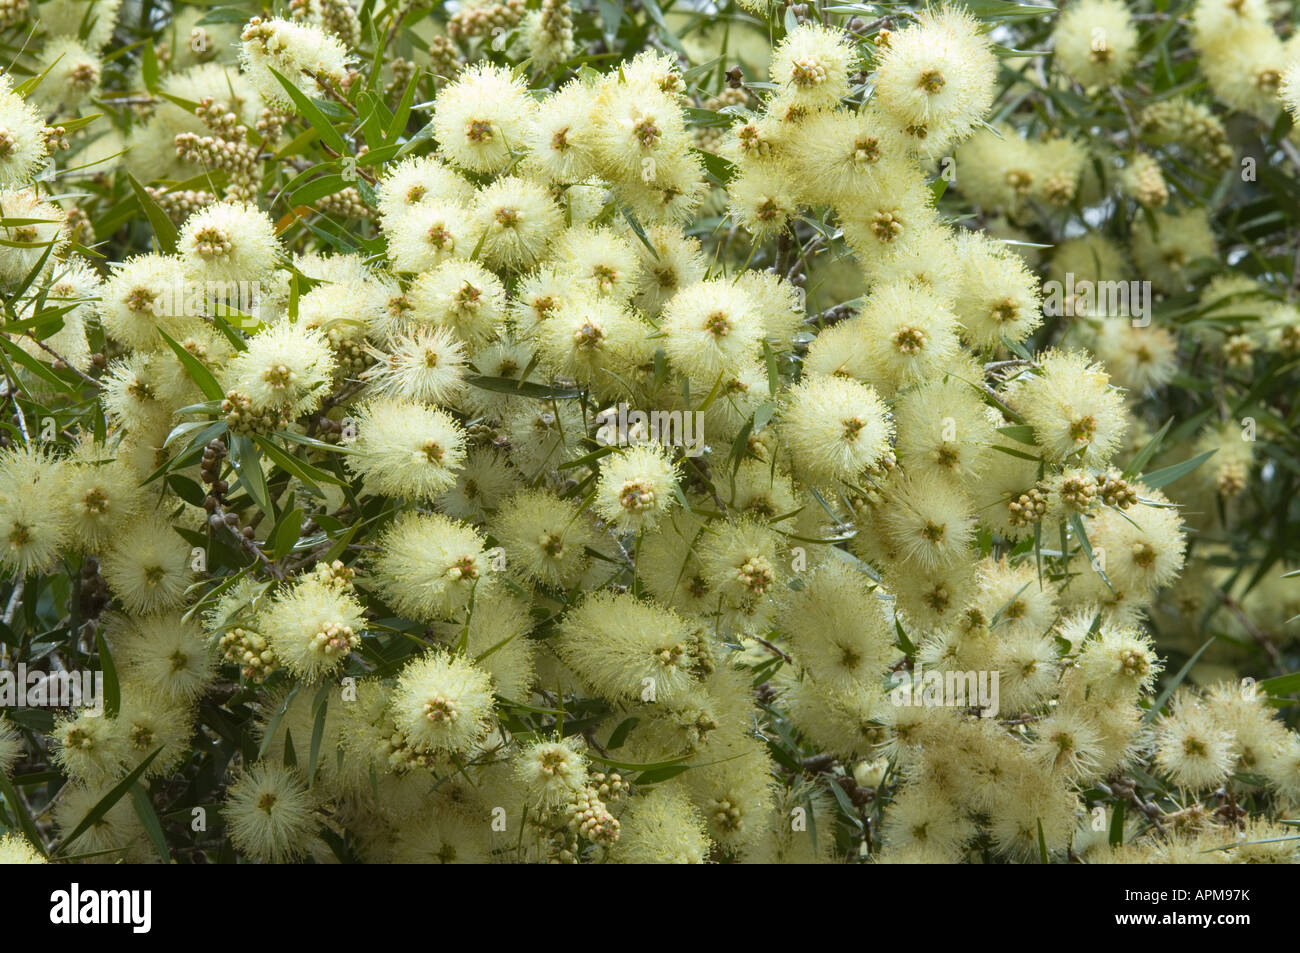 Banksia Farm Mount Barker Western Australia October Australia High Resolution Stock Photography And Images Alamy